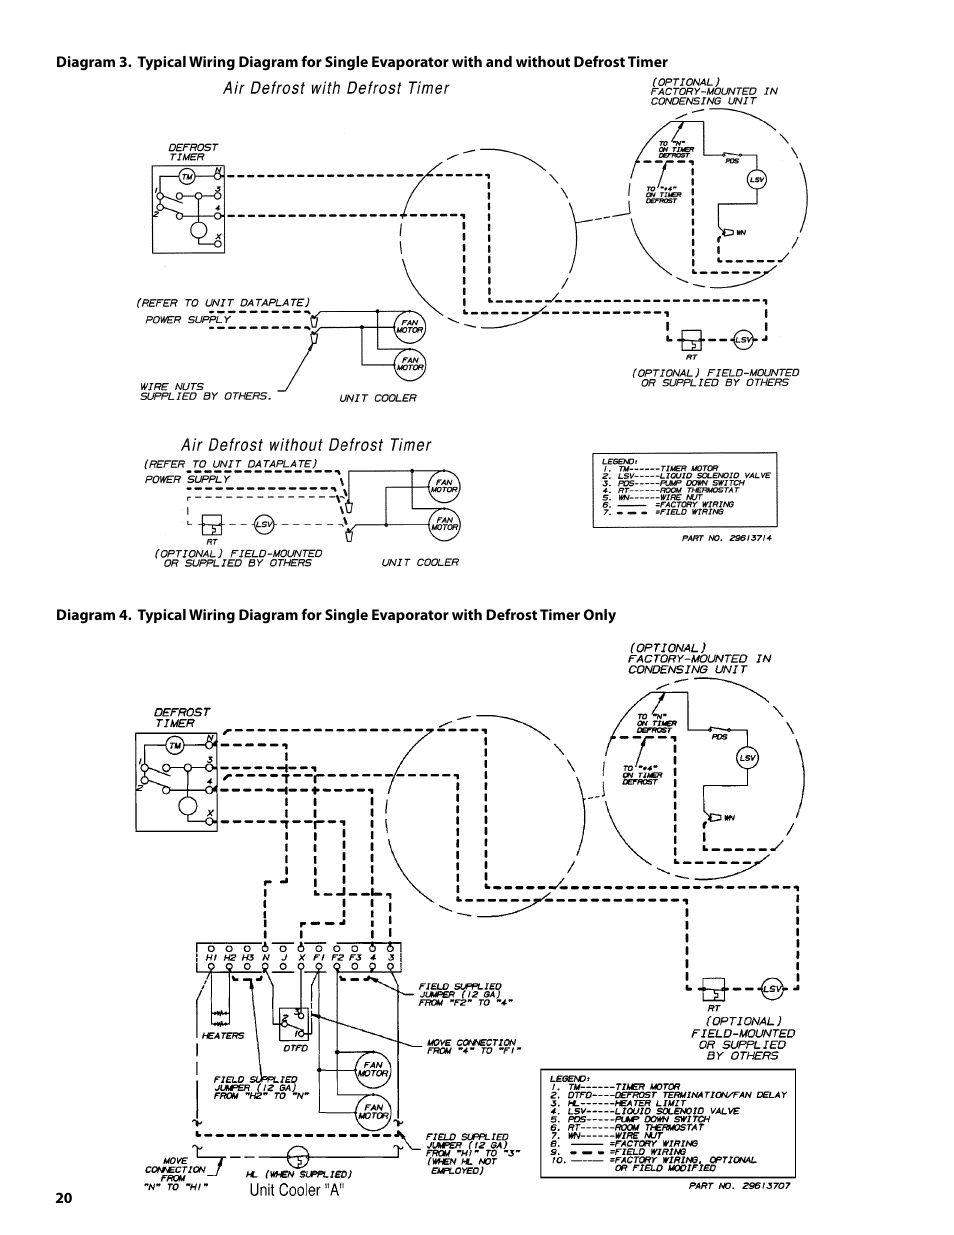 Maytag Wiring Diagram Simple Guide About Dryer Schematic Heatcraft Refrigeration Products Condensing Units H Im Cu 4 Prong Motor